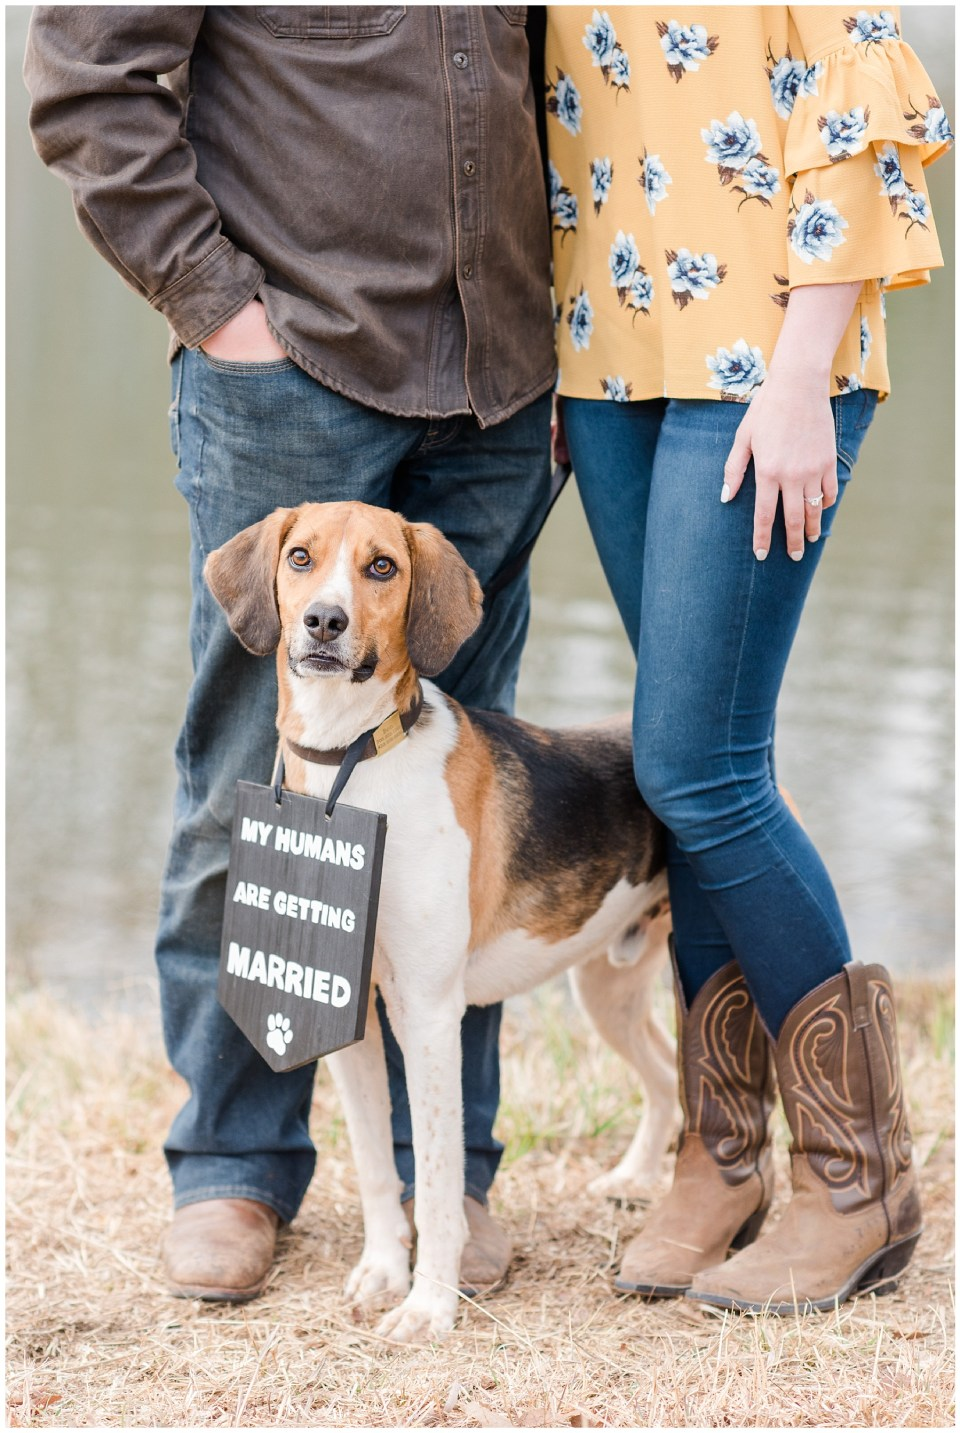 my-humans-are-getting-married-dog-sign